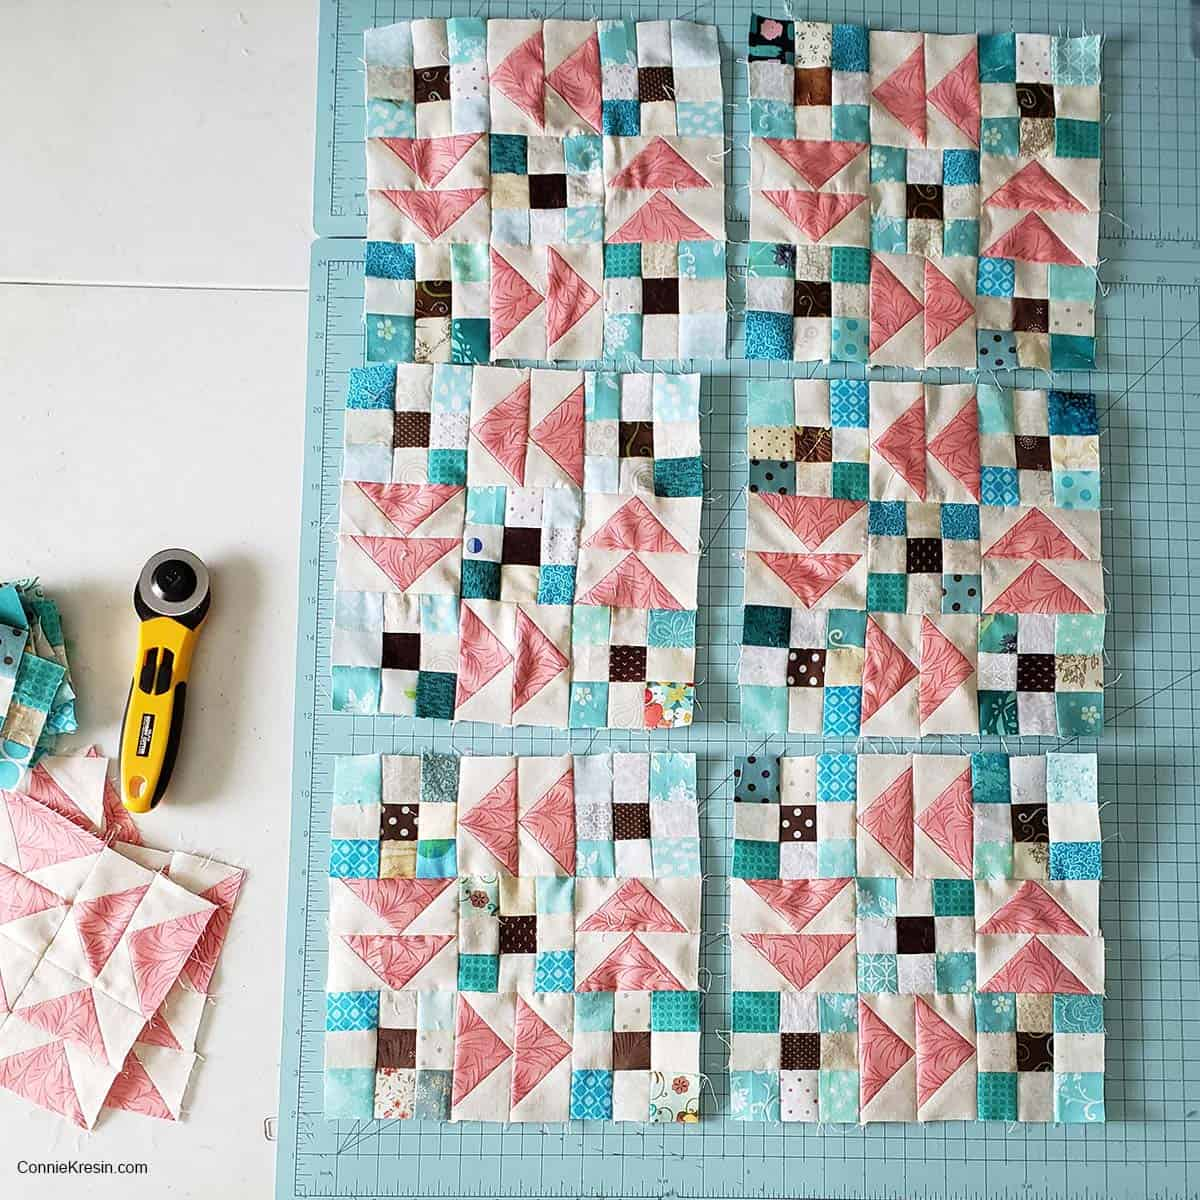 Flying geese and 9 patch blocks